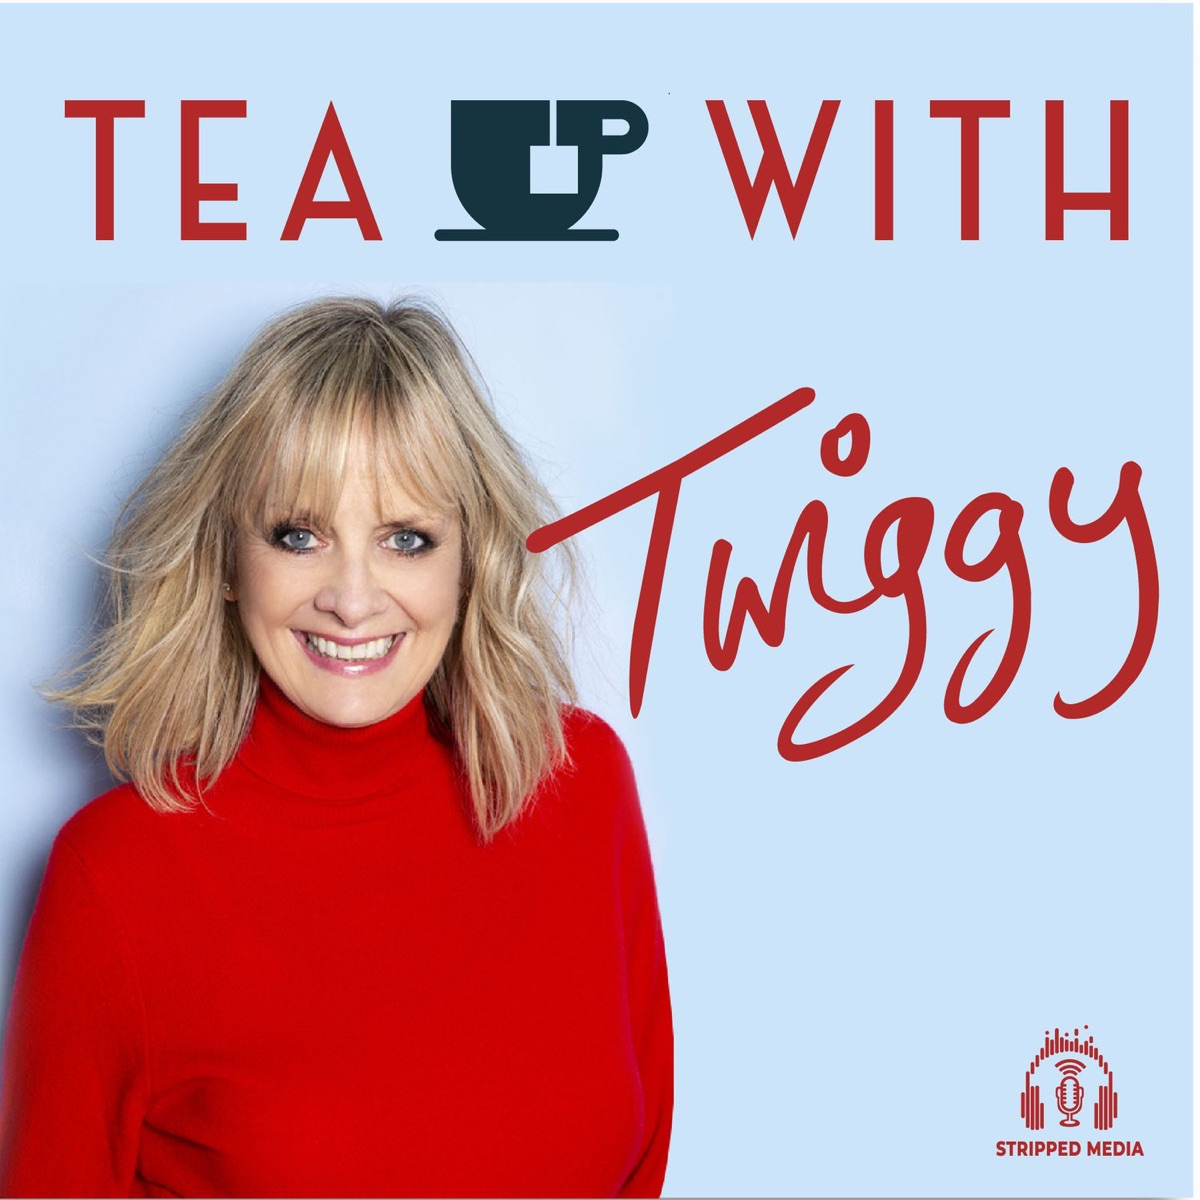 Tea With Twiggy